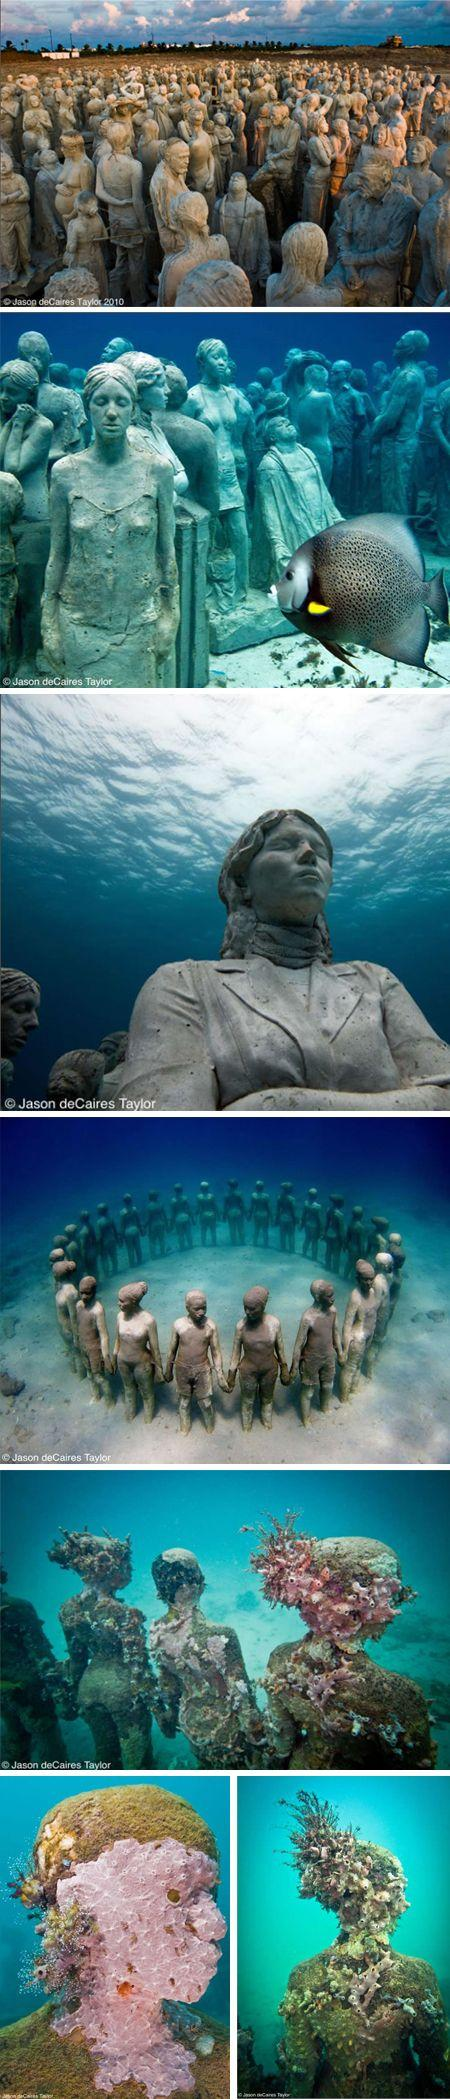 Свадьба - Jason Decaires Taylor - Insanely Beautiful, Kinda Spooky, And Environmentally Friendly All In One Shot.